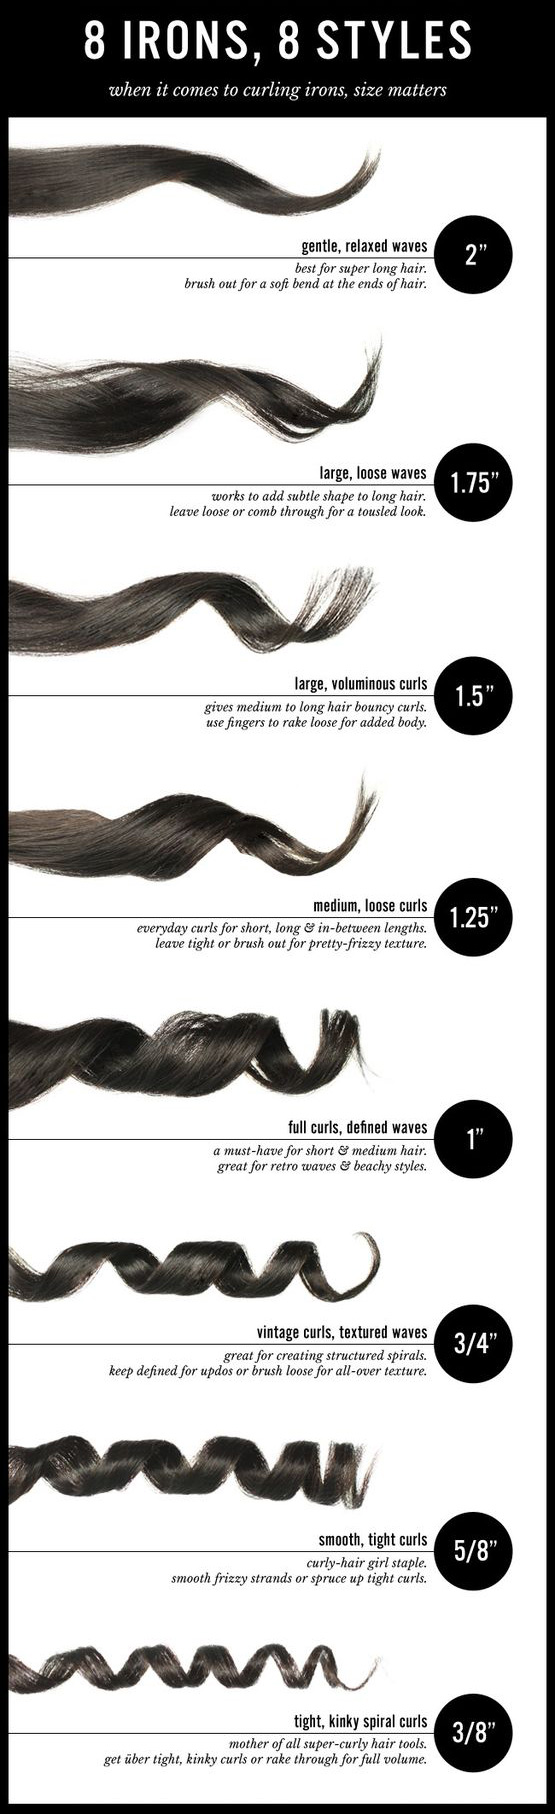 curling iron size does matter